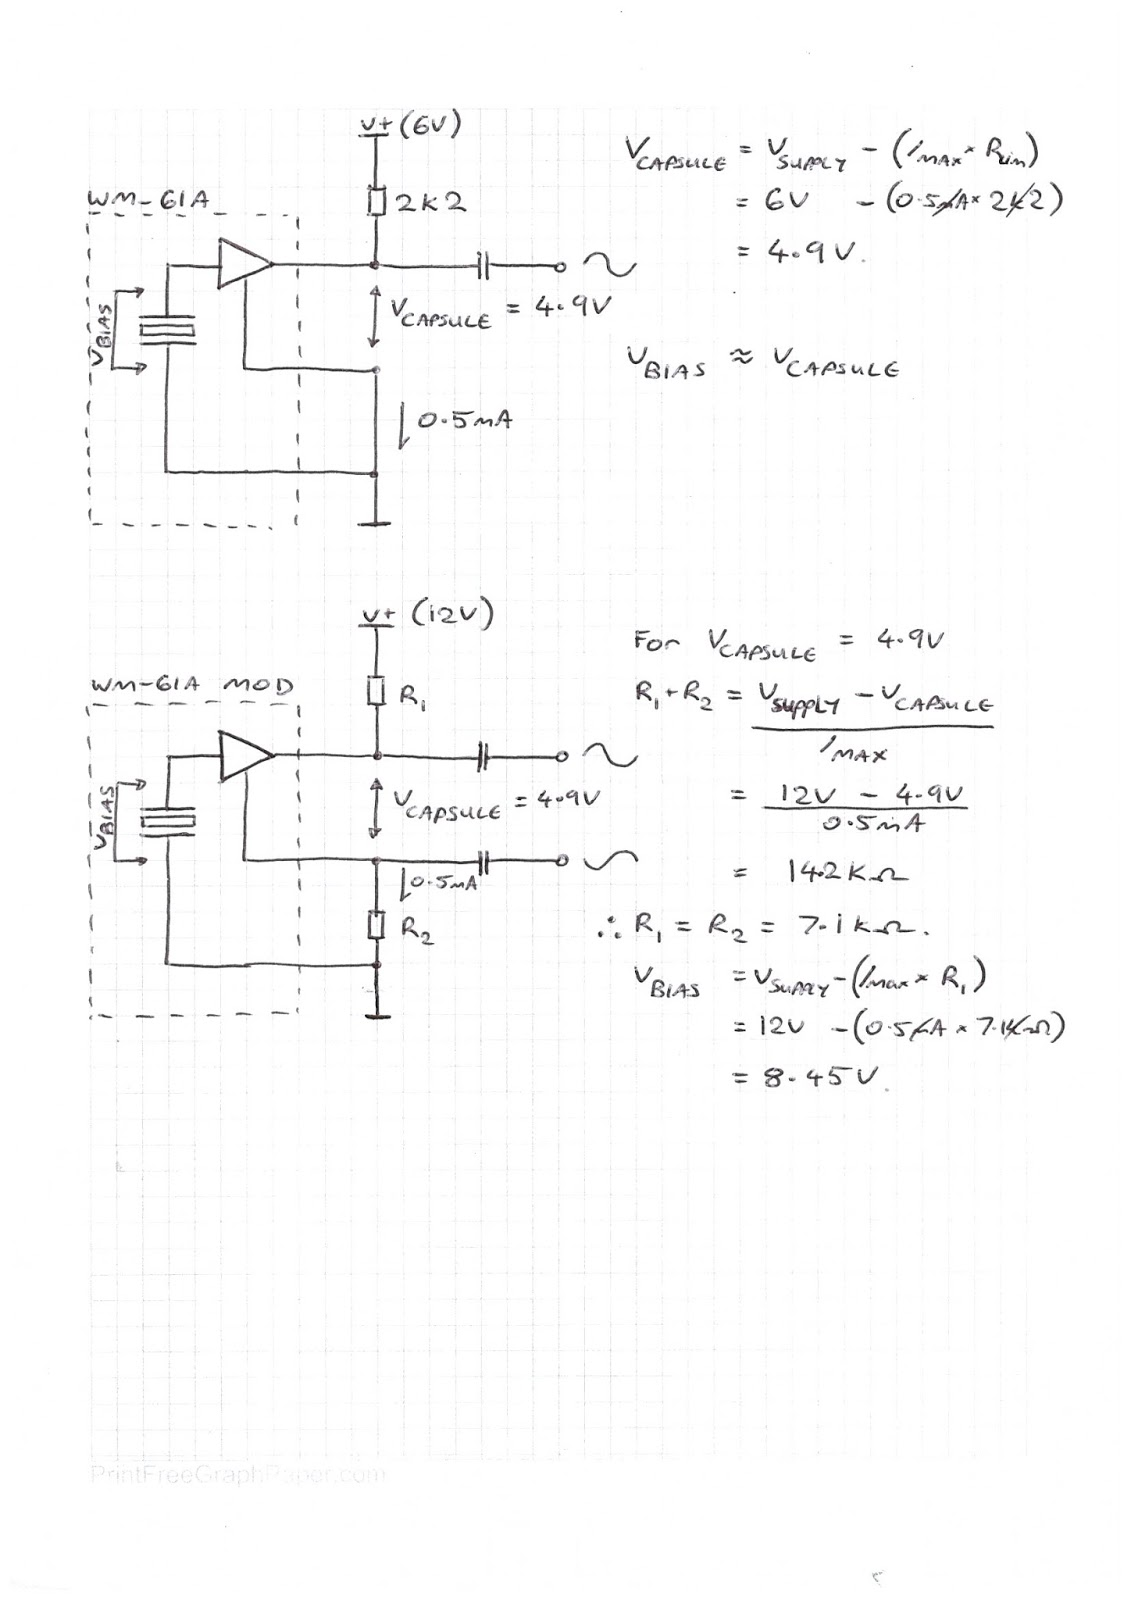 Levy Sound Design 48v Phantom Powered Electret Condenser Microphone Is The Schematic Circuit Diagram For Modification Of Panasonic Capsule Permits A Much Greater Bias Voltage Across Microphones Capacitive Plate While Retaining Suitable